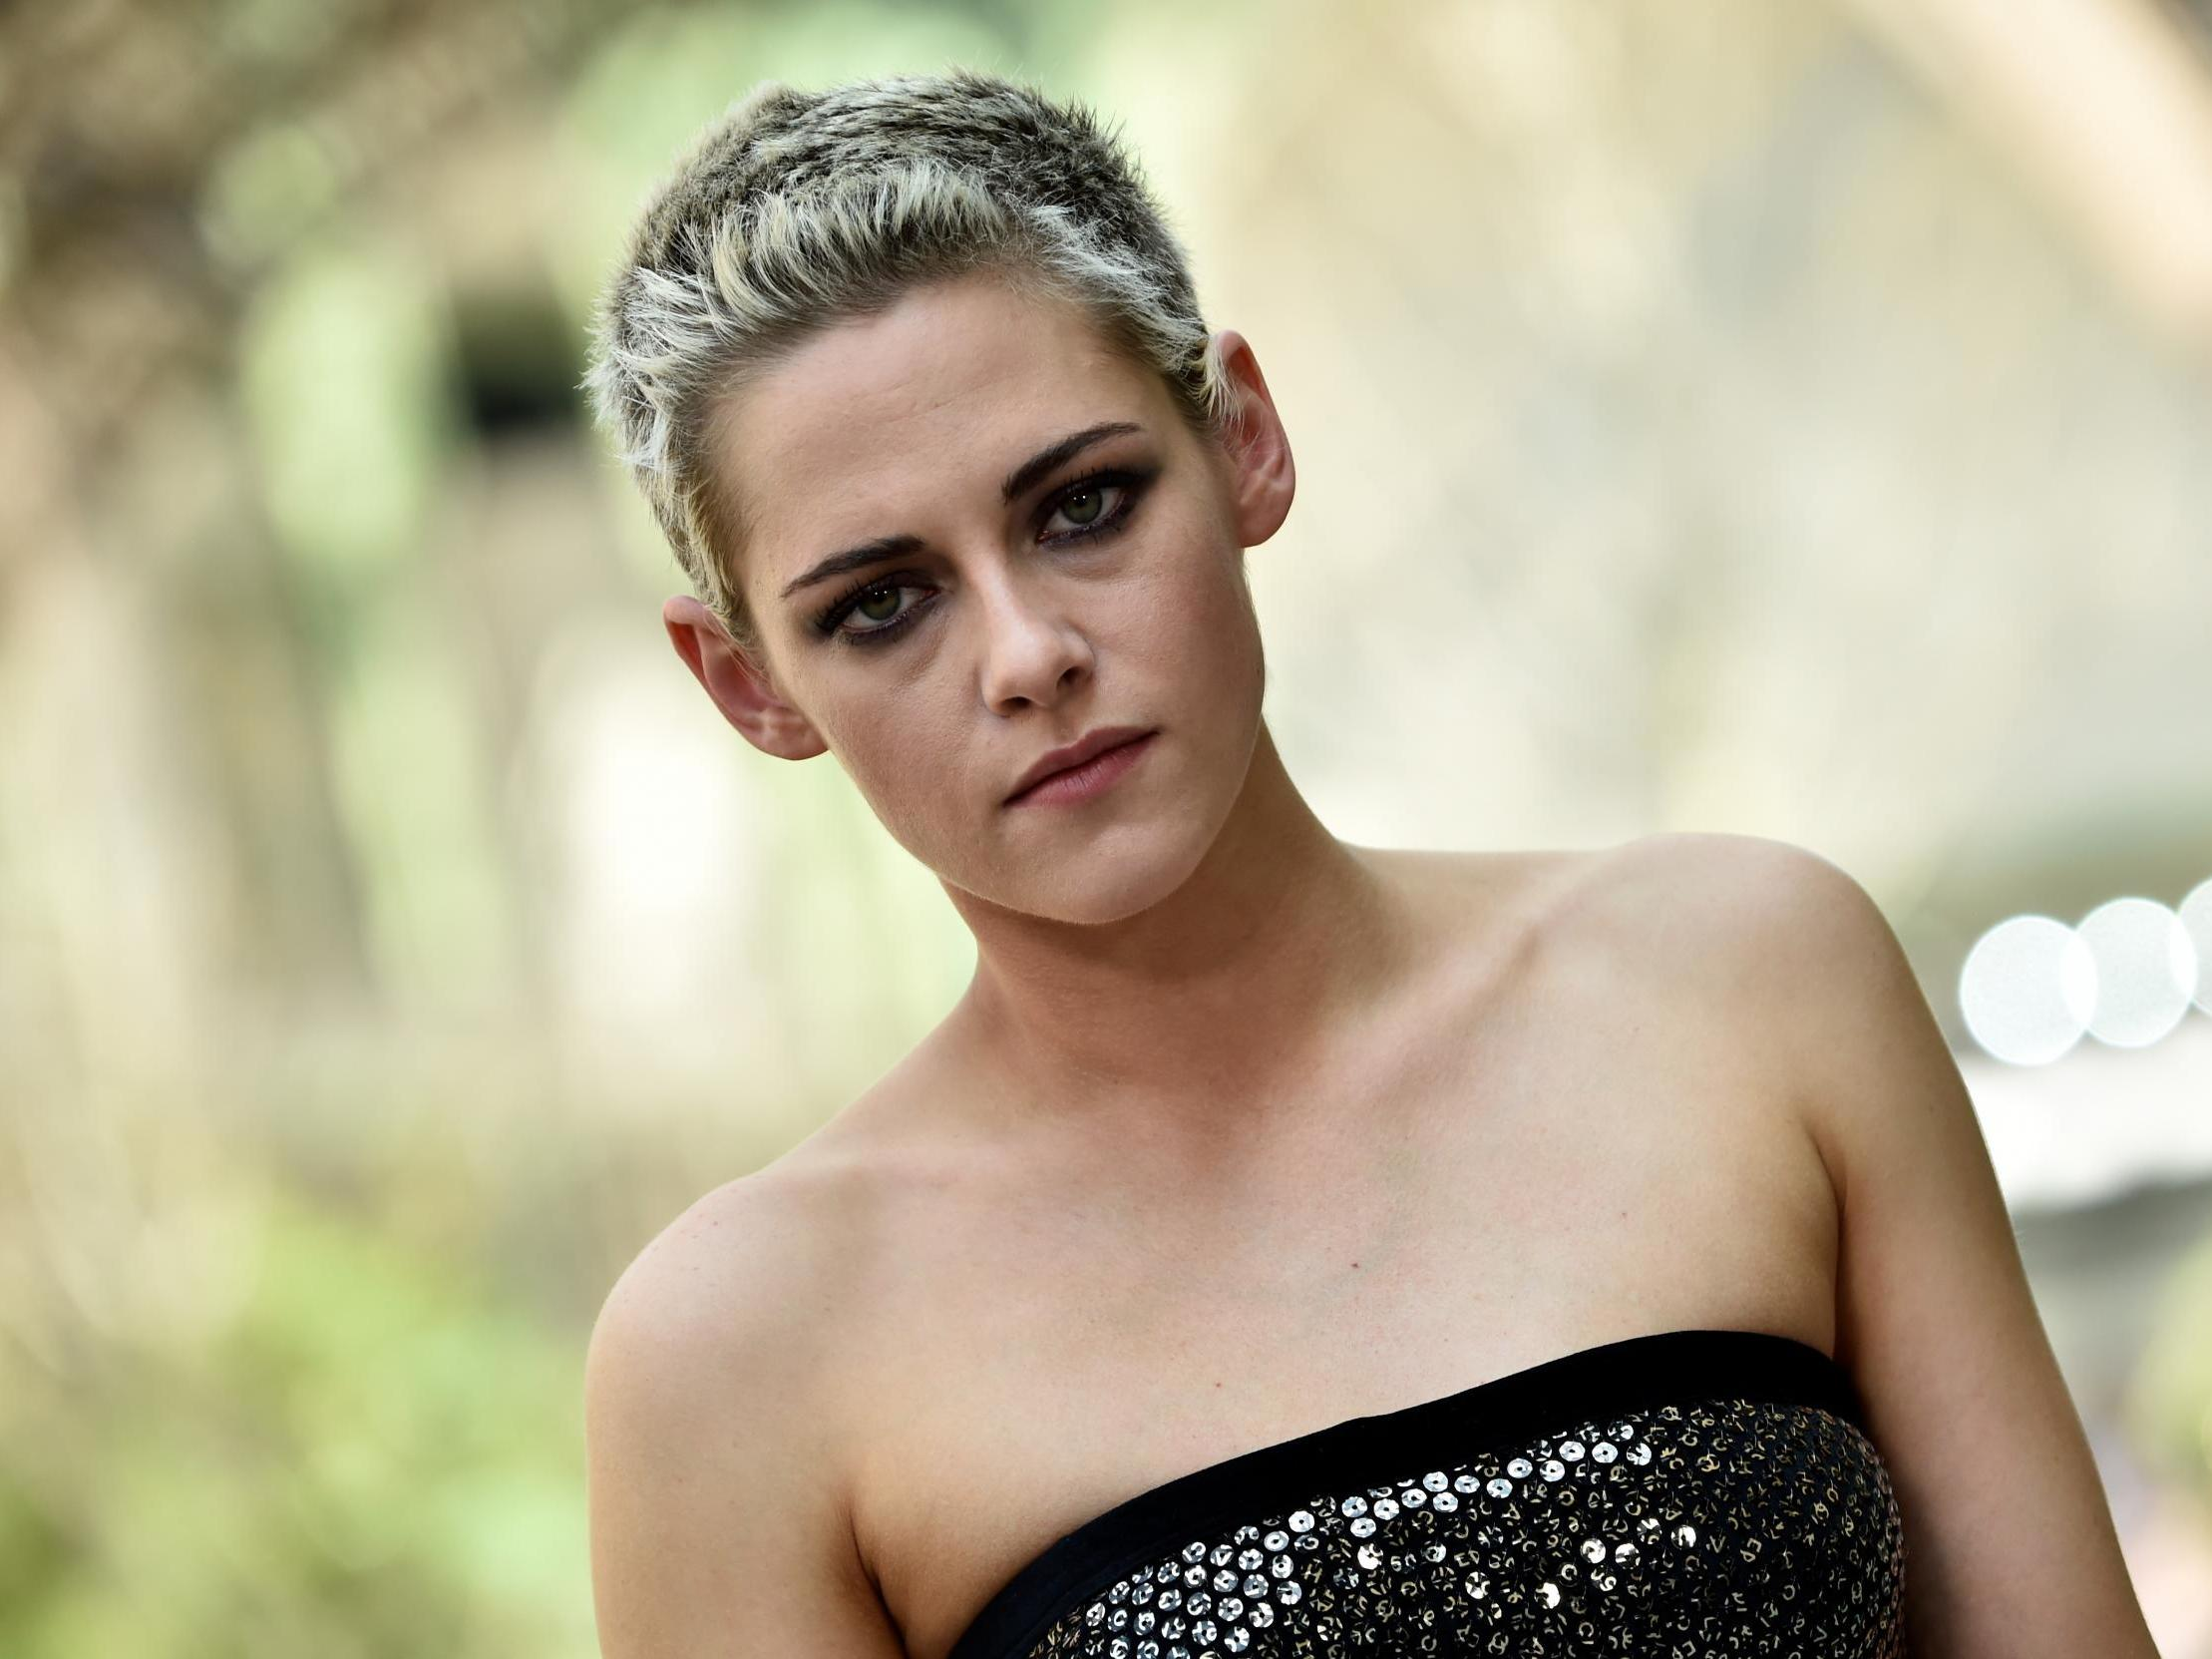 Kristen Stewart says she was not asked back for Snow White sequel because of 'slut-shaming'